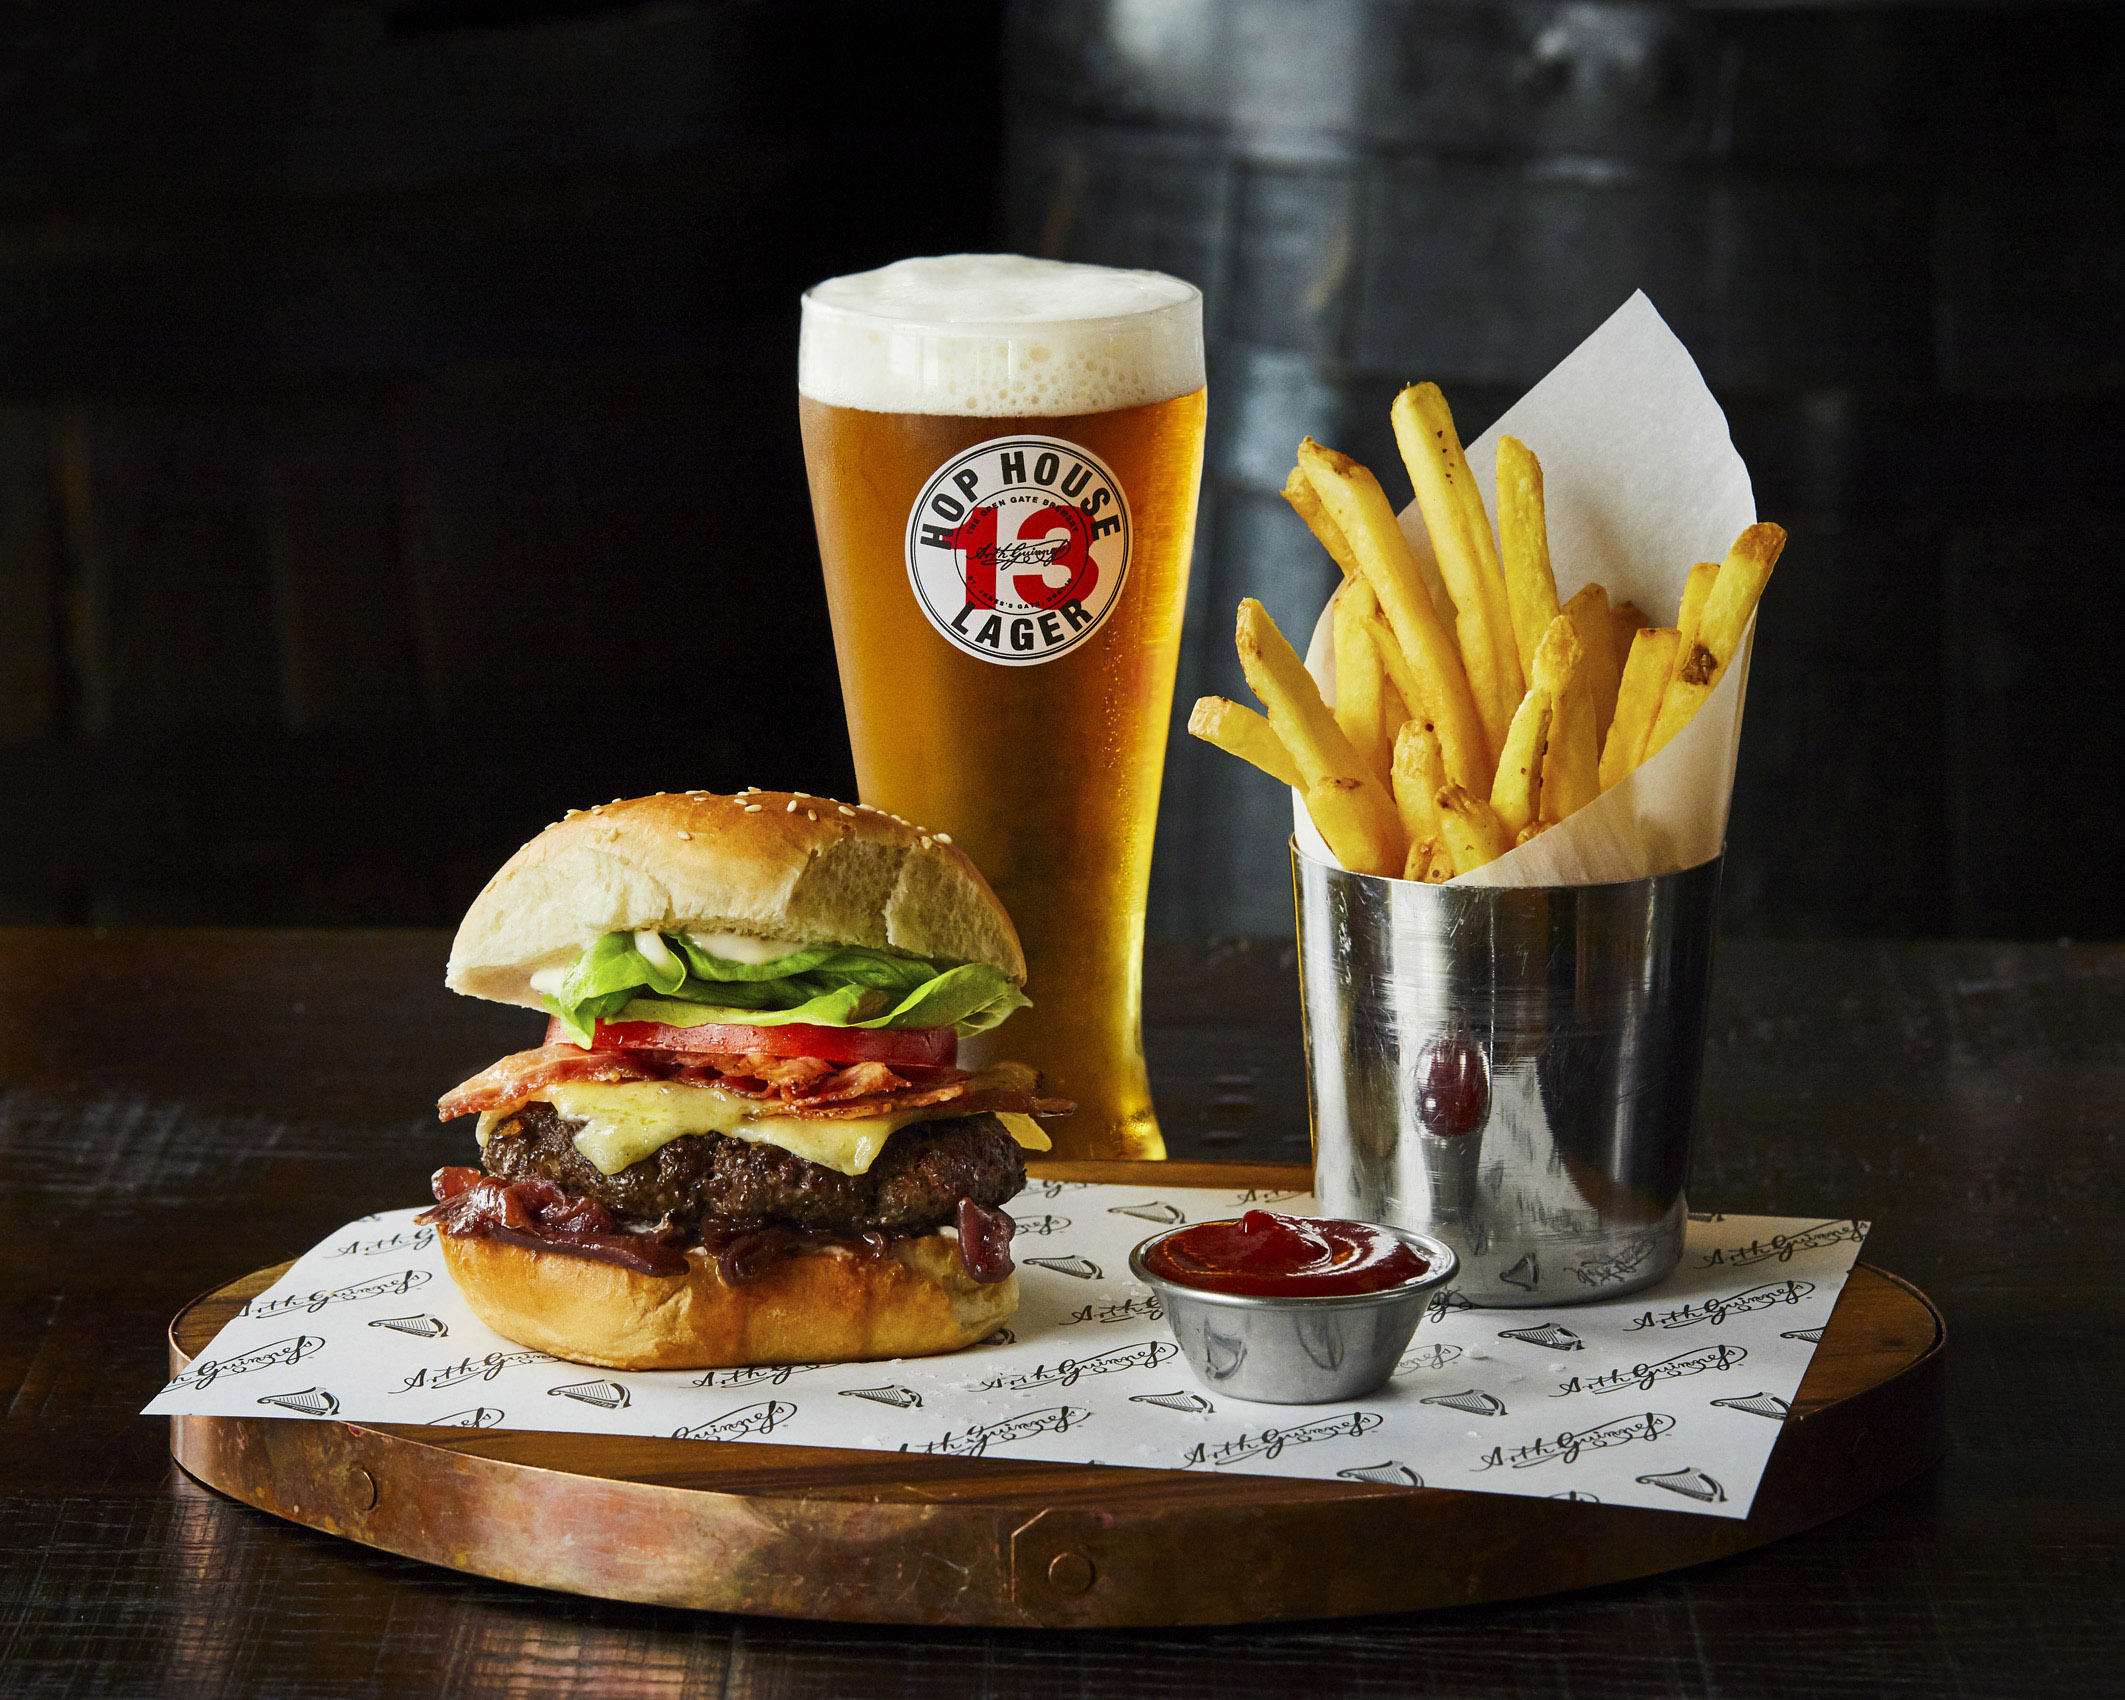 SteveRyan_Photographer_Food_Guinness_HopHouse13_Burger_155